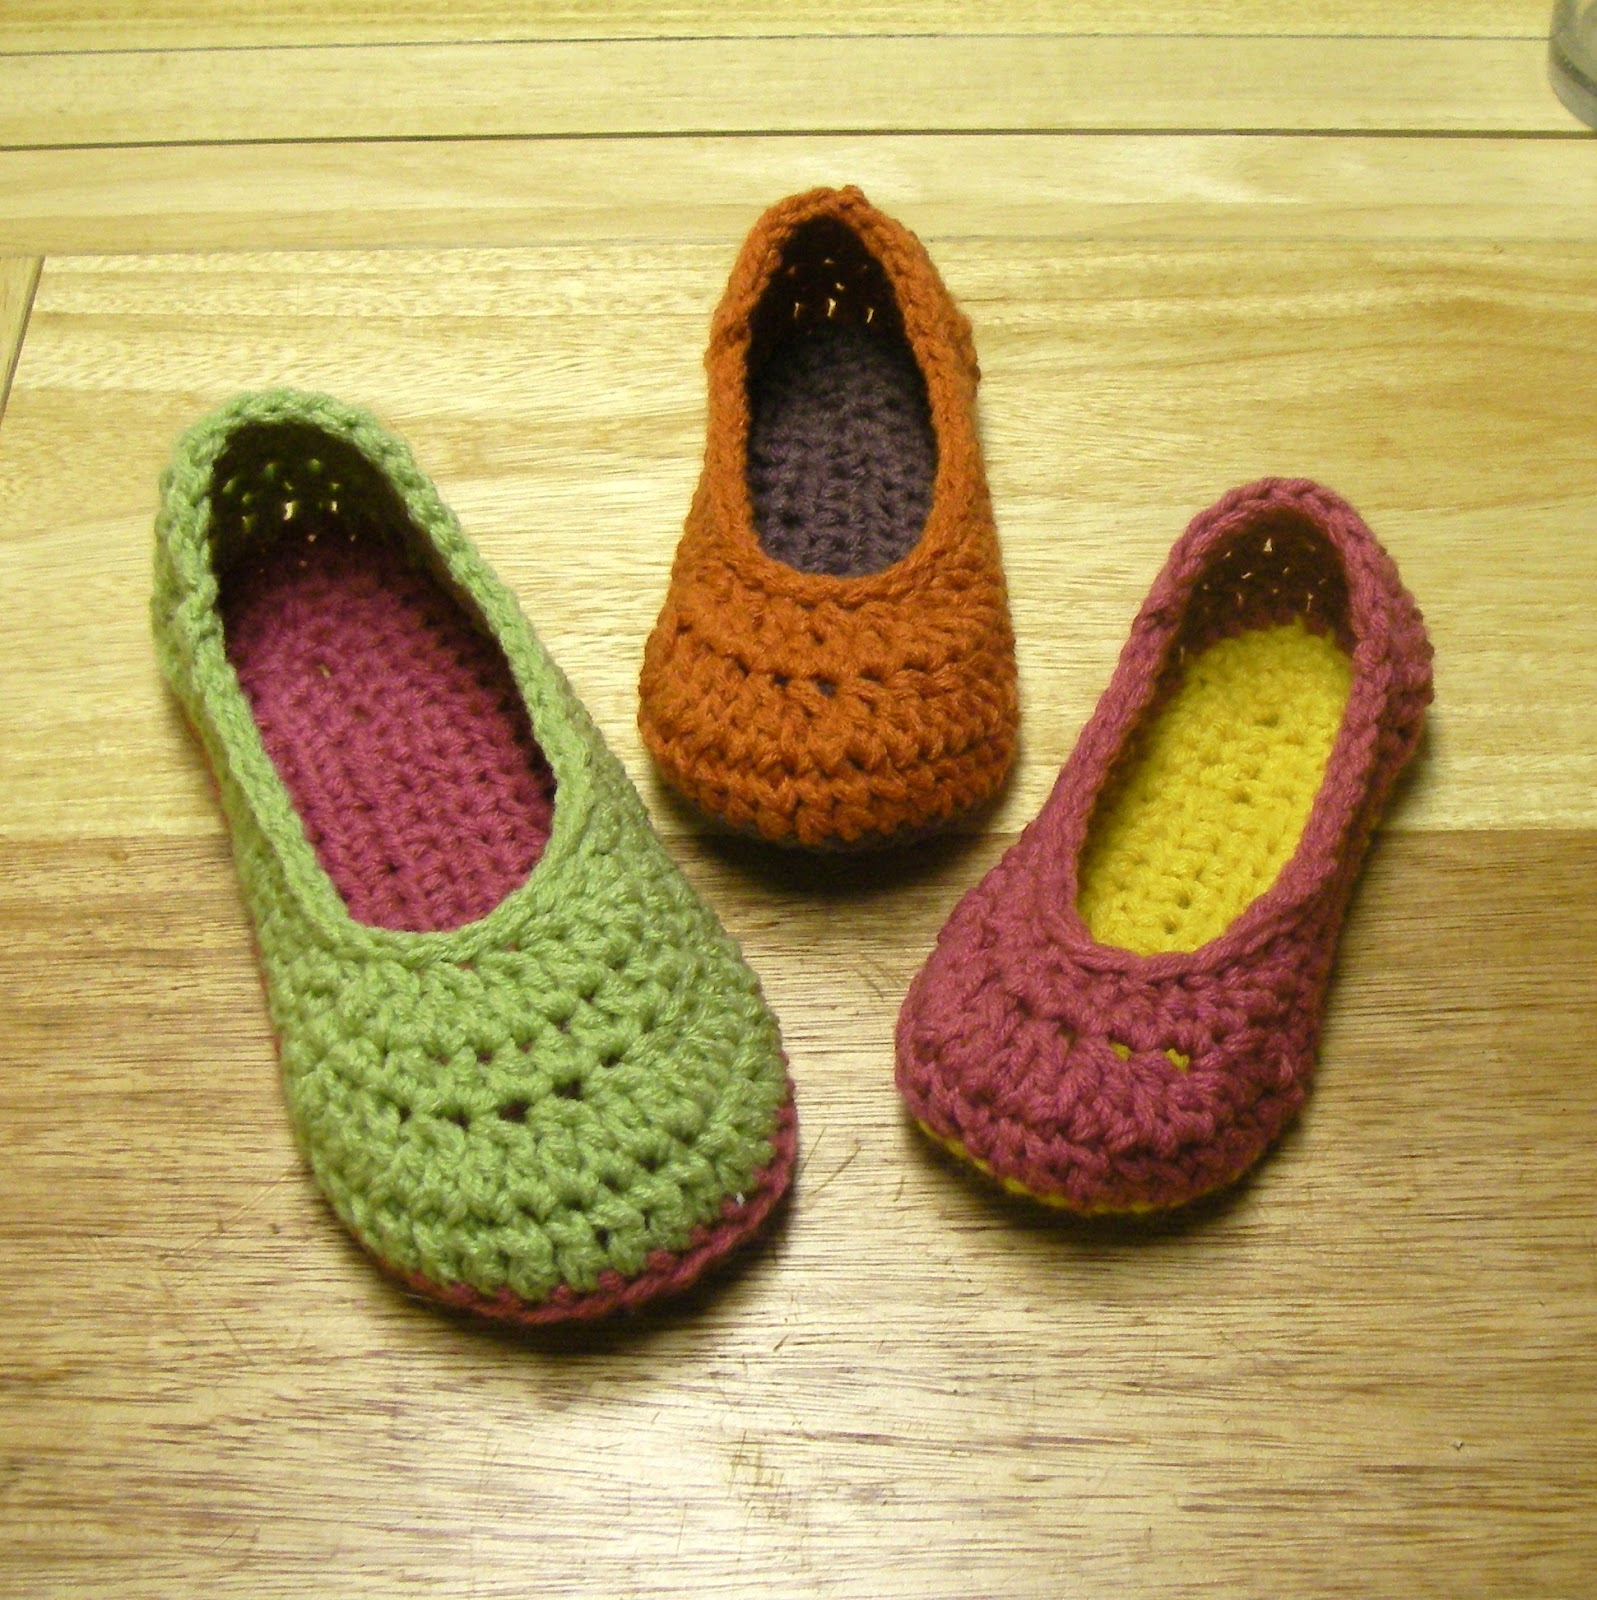 Crochet Patterns Slippers : ... has been moved to MAMACHEE.COM: Crocheting and more crocheting